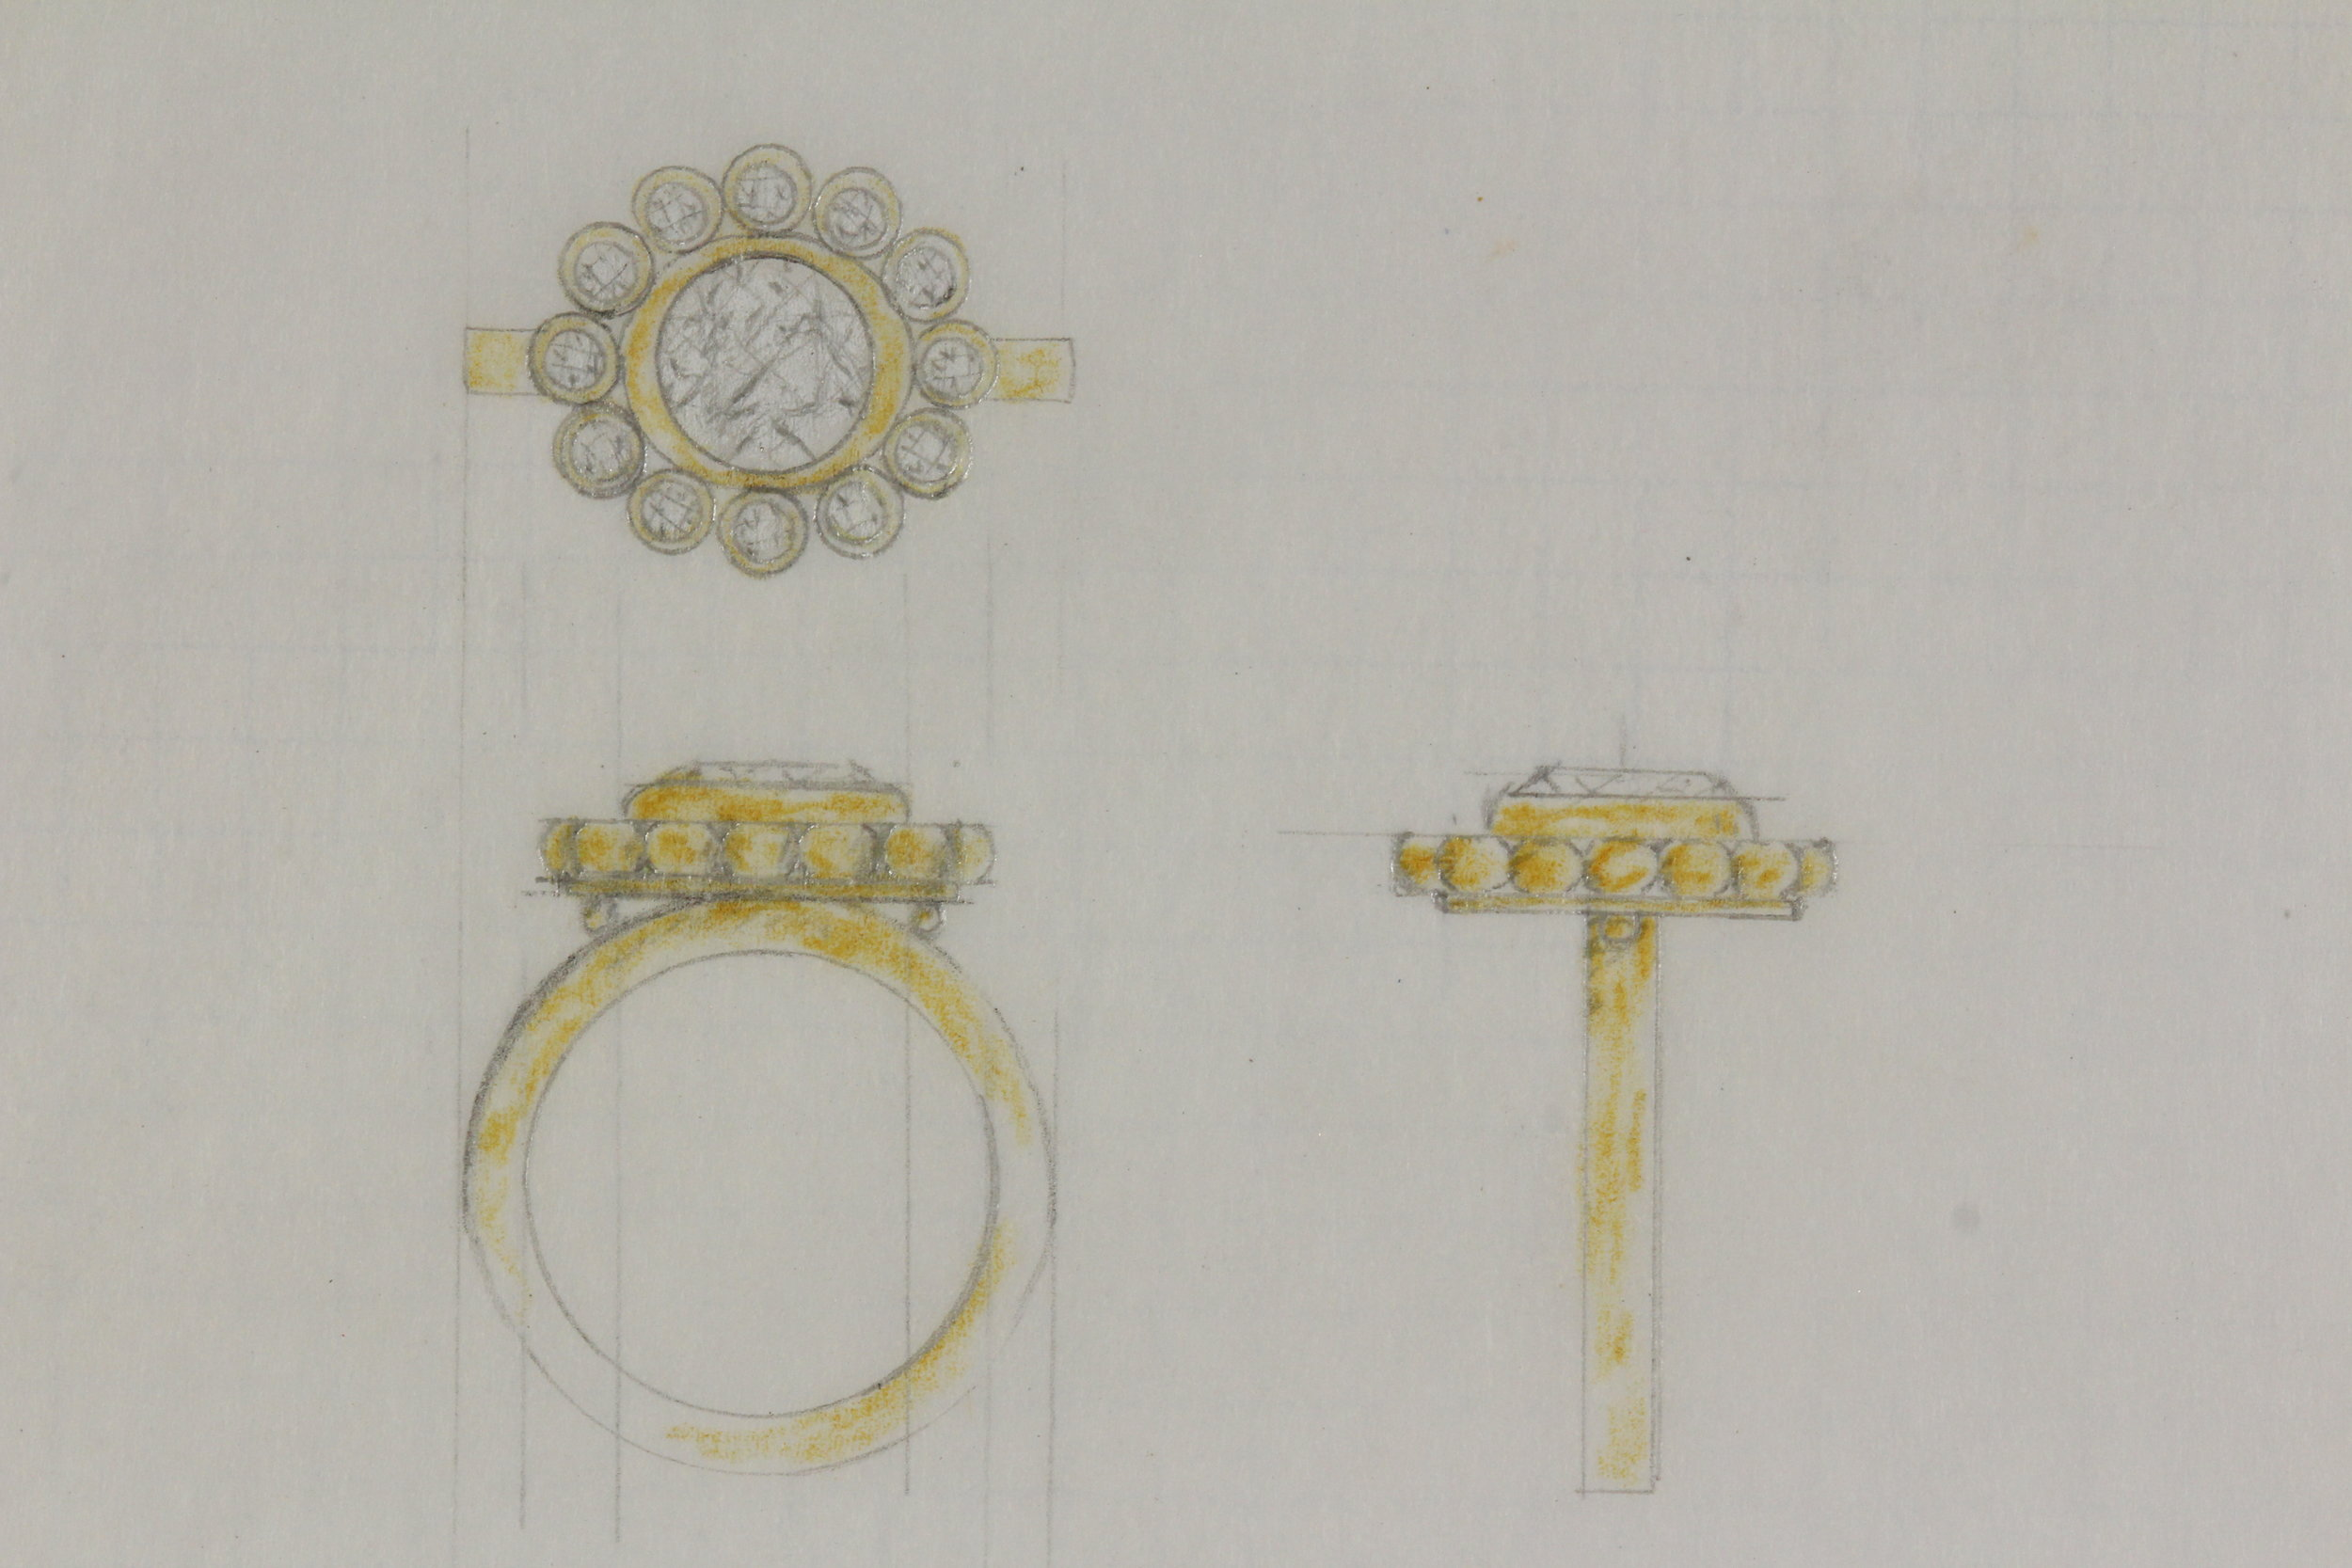 Design Process - In all her high karat glory, this engagement ring was hand fabricated in 22 karat gold. 14 bezel set diamonds encircle a large round brilliant cut diamond on a hat bezel. It also features granulation, a hammer texture and satin finish, all applied by hand. It was designed to accommodate a flush fitting wedding band, making it a very unique wedding set.